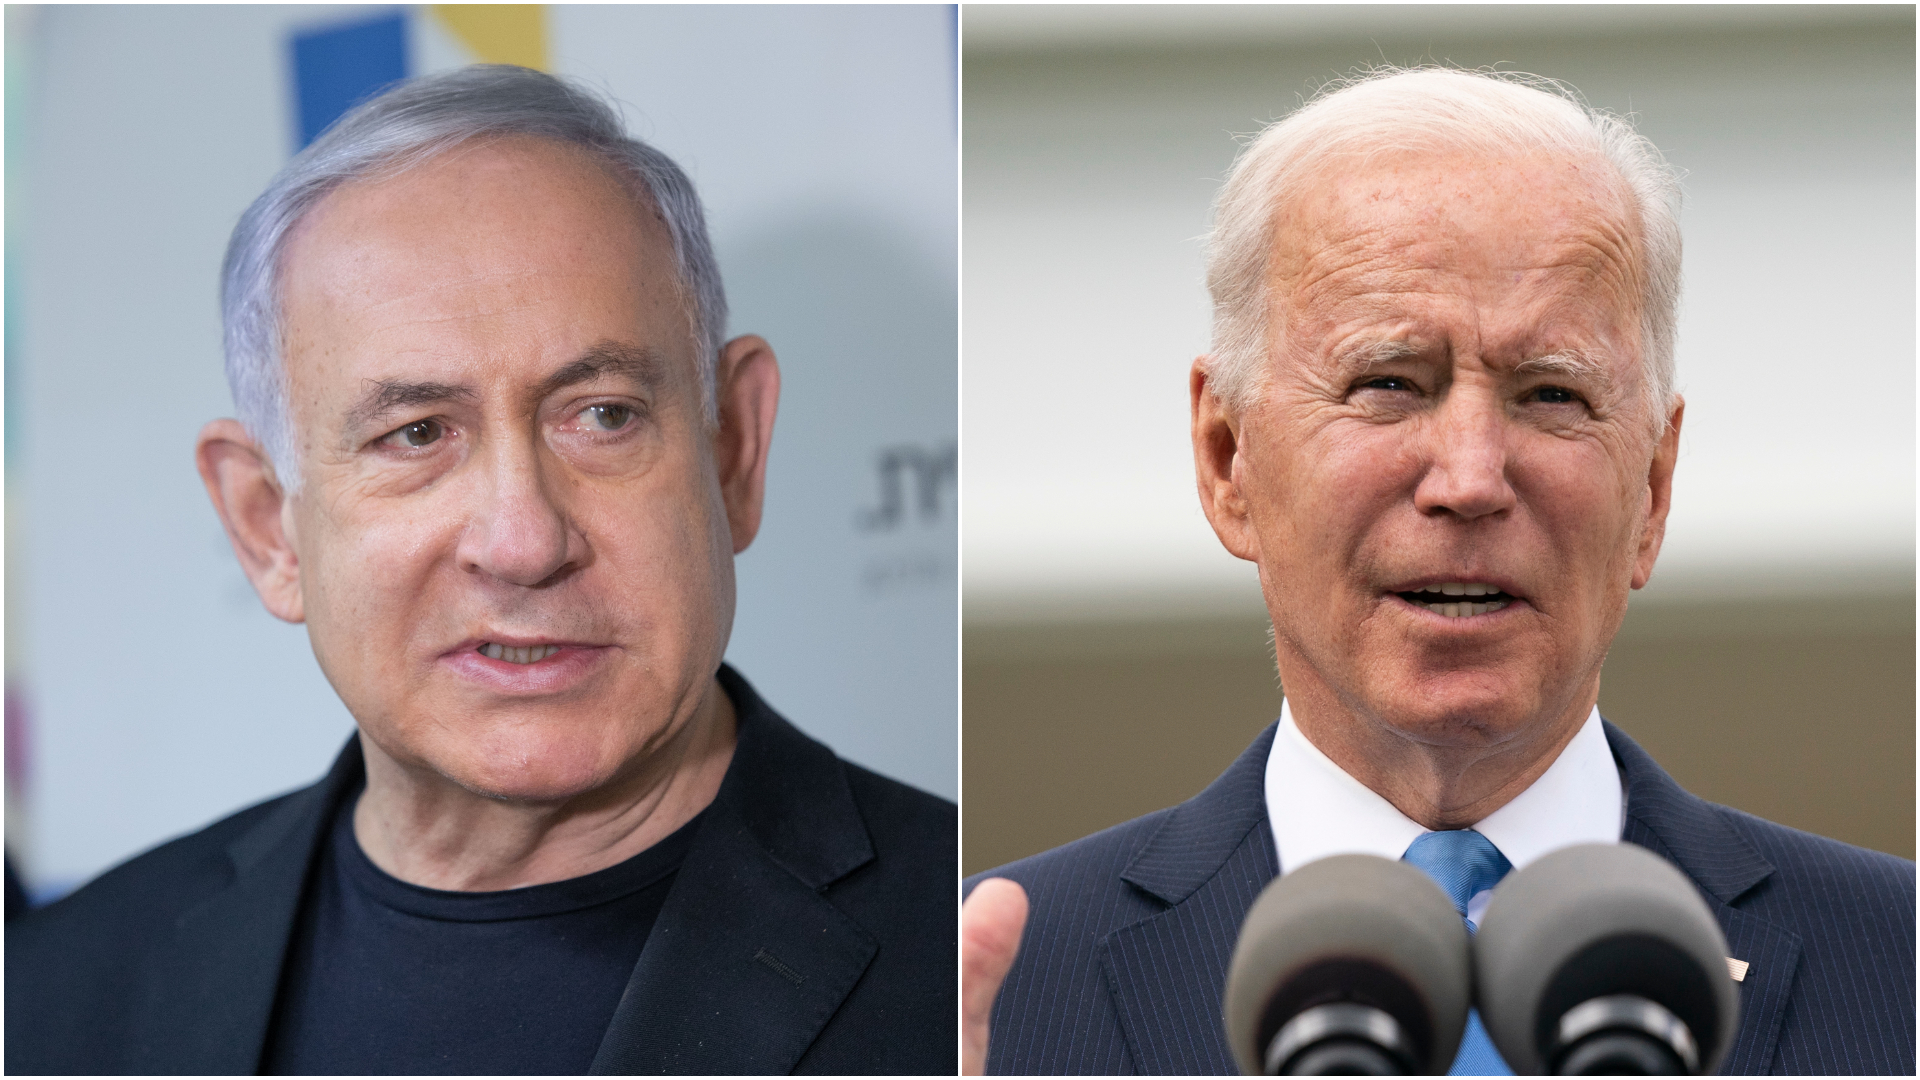 Biden Expresses Support For Ceasefire While Speaking To Netanyahu